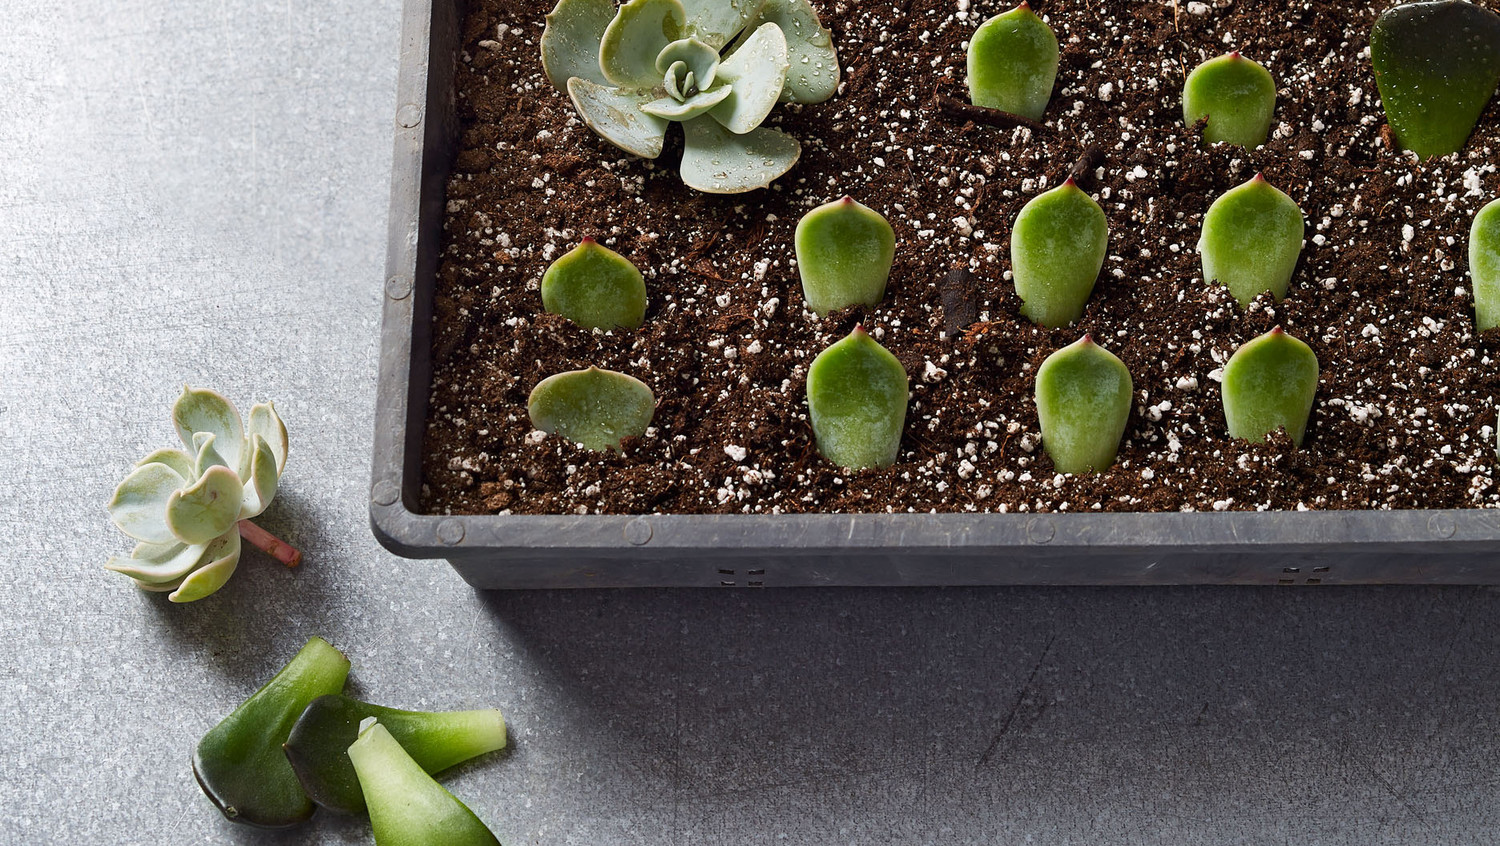 Propagating Succulents 1 Plant Hundreds Of Babies